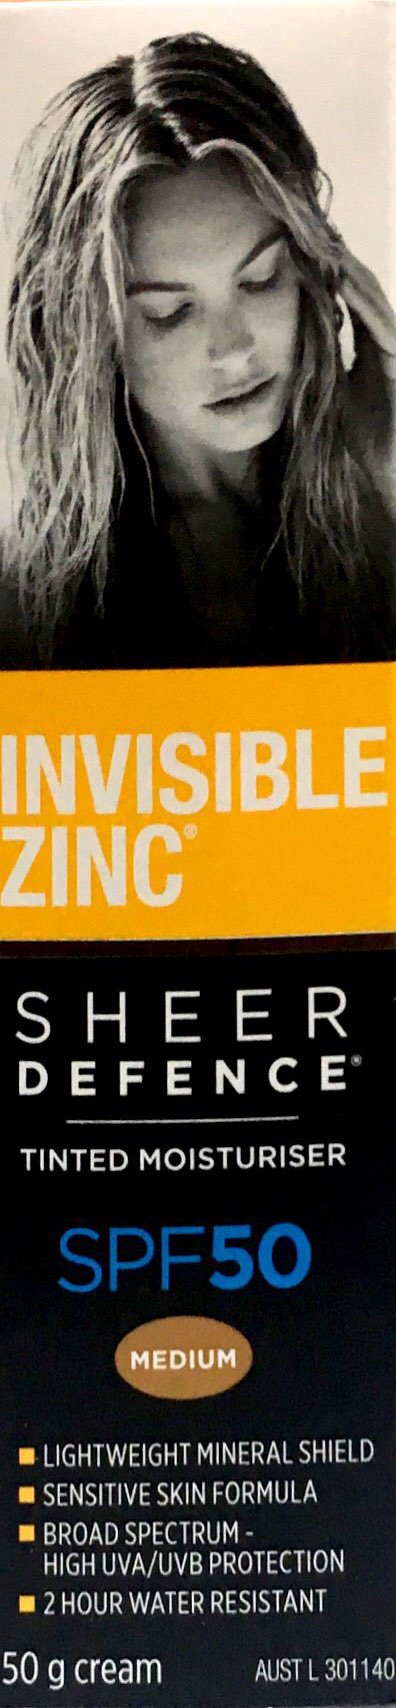 Invisible Zinc Sheer Defence SPF50 Tinted Moisturiser 50gm-Medium - DominionRoadPharmacy